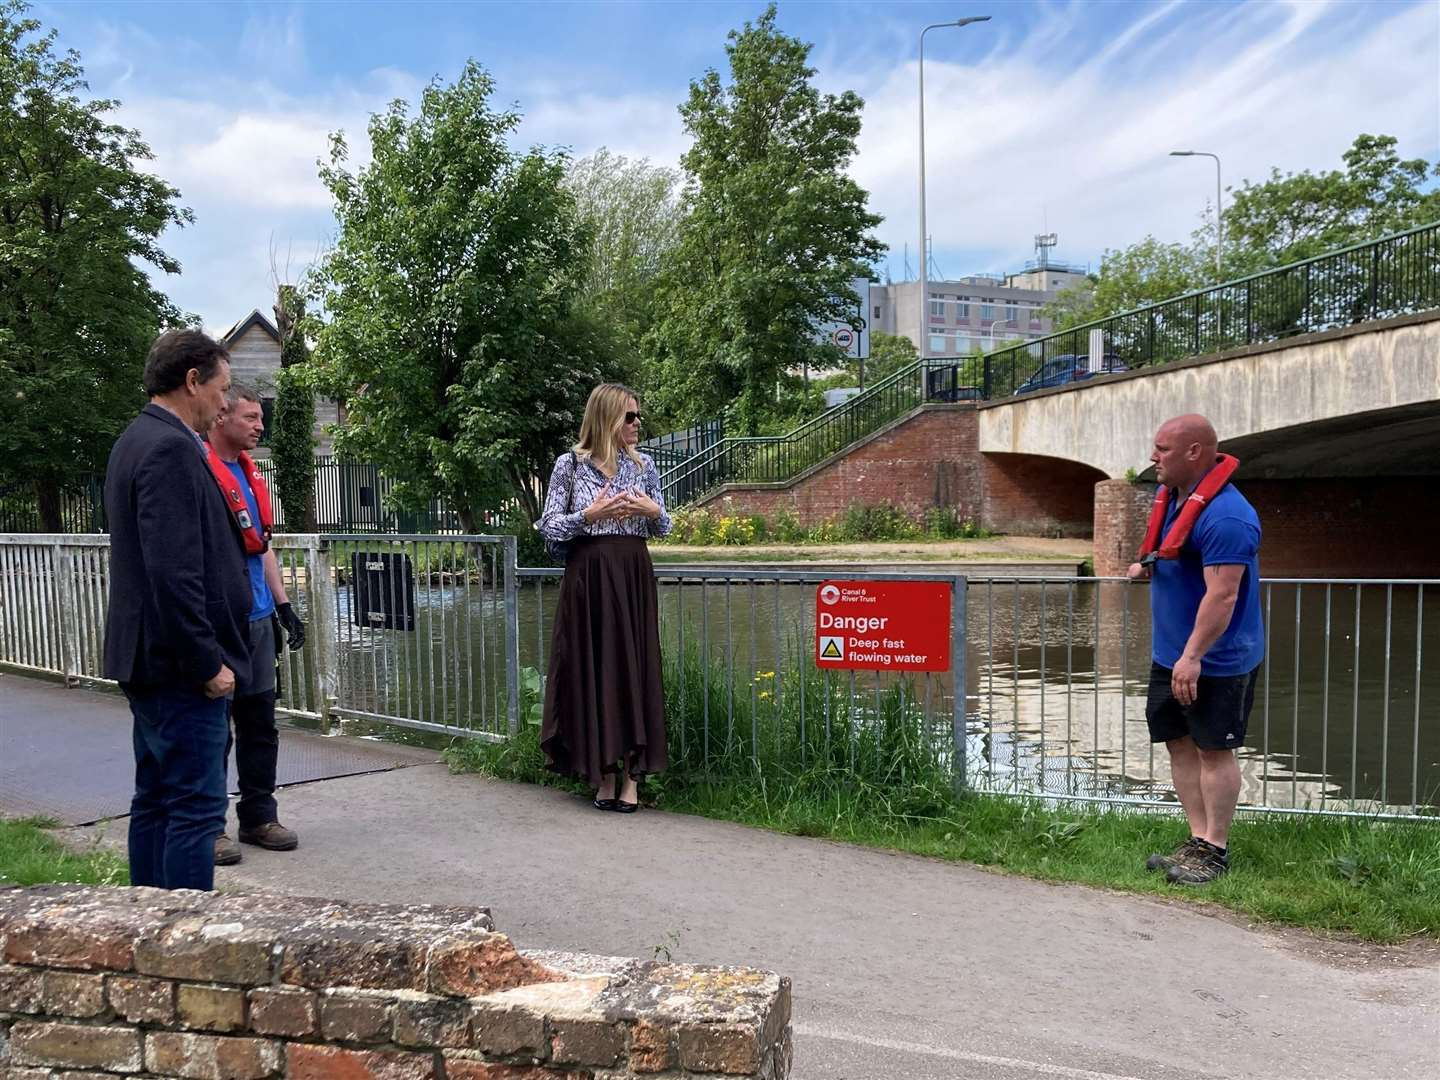 Mark Evans and Shaun Swain of Canal and River Trust, Laura Farris MP and Dean Adlem (Canal & River Trust) inspect new railings in Newbury on June 2.